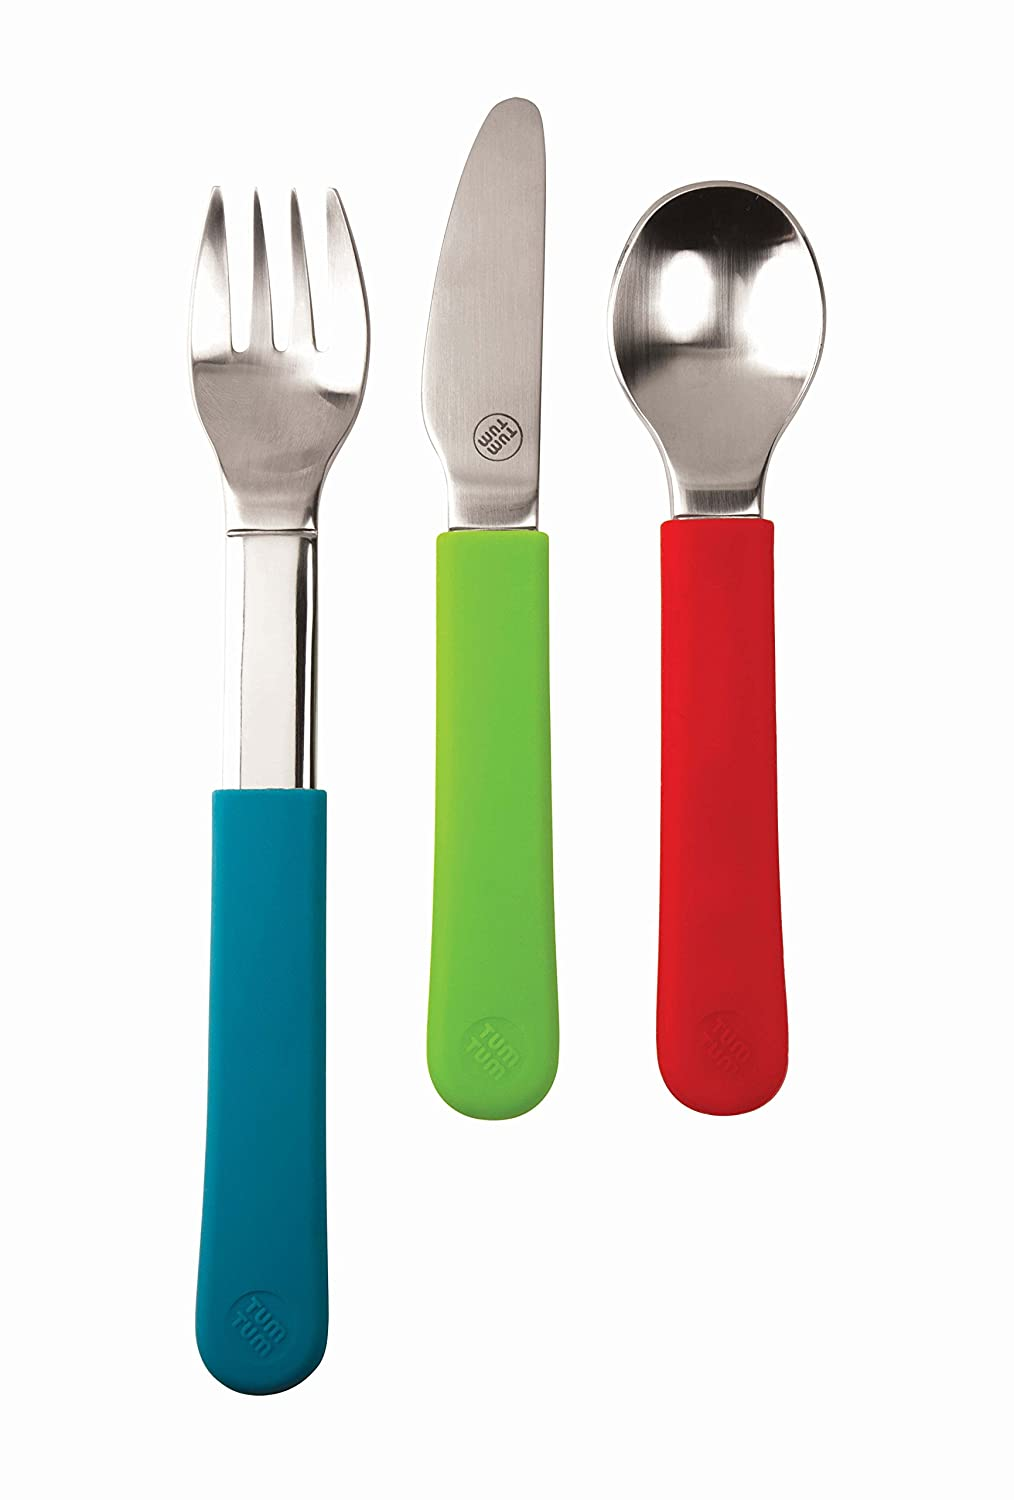 TUM TUM Trainee Stainless Steel Childrens Cutlery Set with Removable Grippy Sleeves